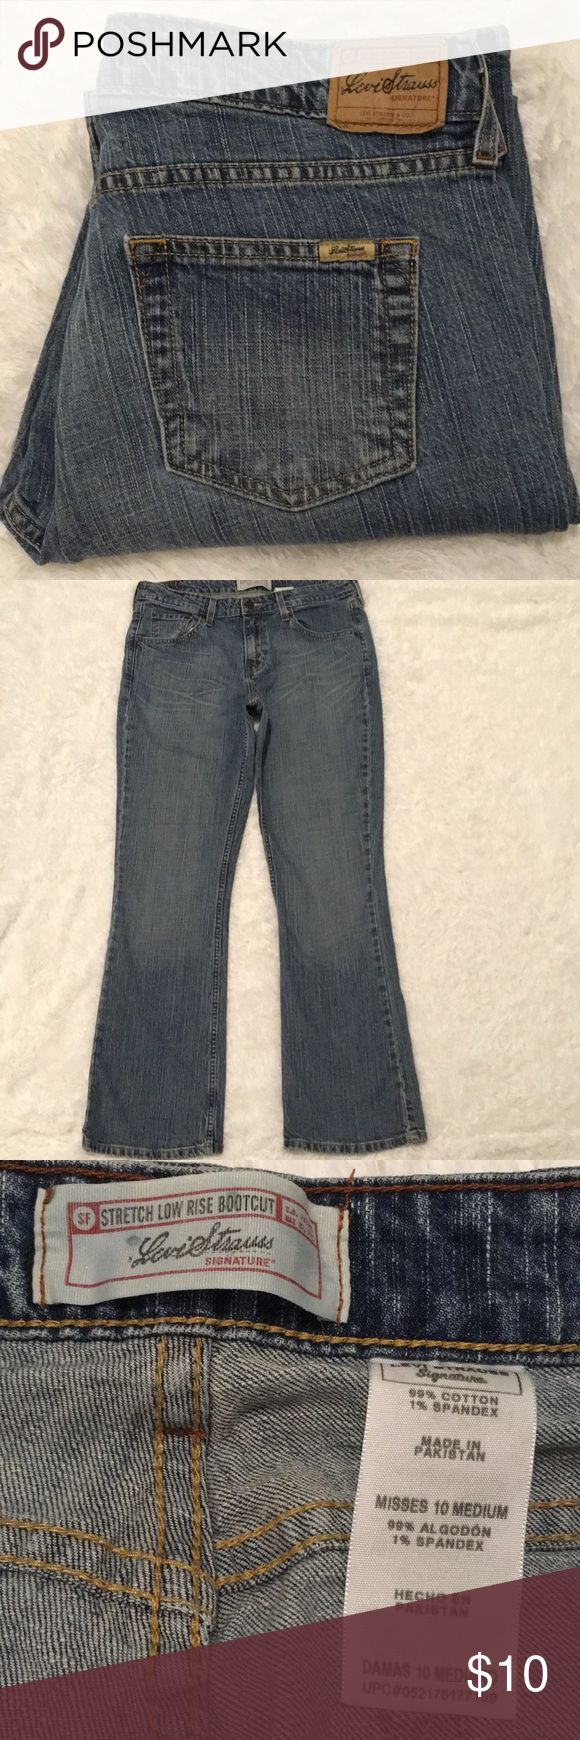 "Levi Strauss Sz 10M Low Rise Blue Jean Pants Signature Levi Strauss Stretch Low Rise Bootcut Jean Pants 5-Pocket  Zip up fly Button Closure  Distressed on back Leg (see pic)  Waist 16.5"" Front Rise 10"" Inseam 30.5"" Please see all pictures Signature by Levi Strauss Jeans Boot Cut"